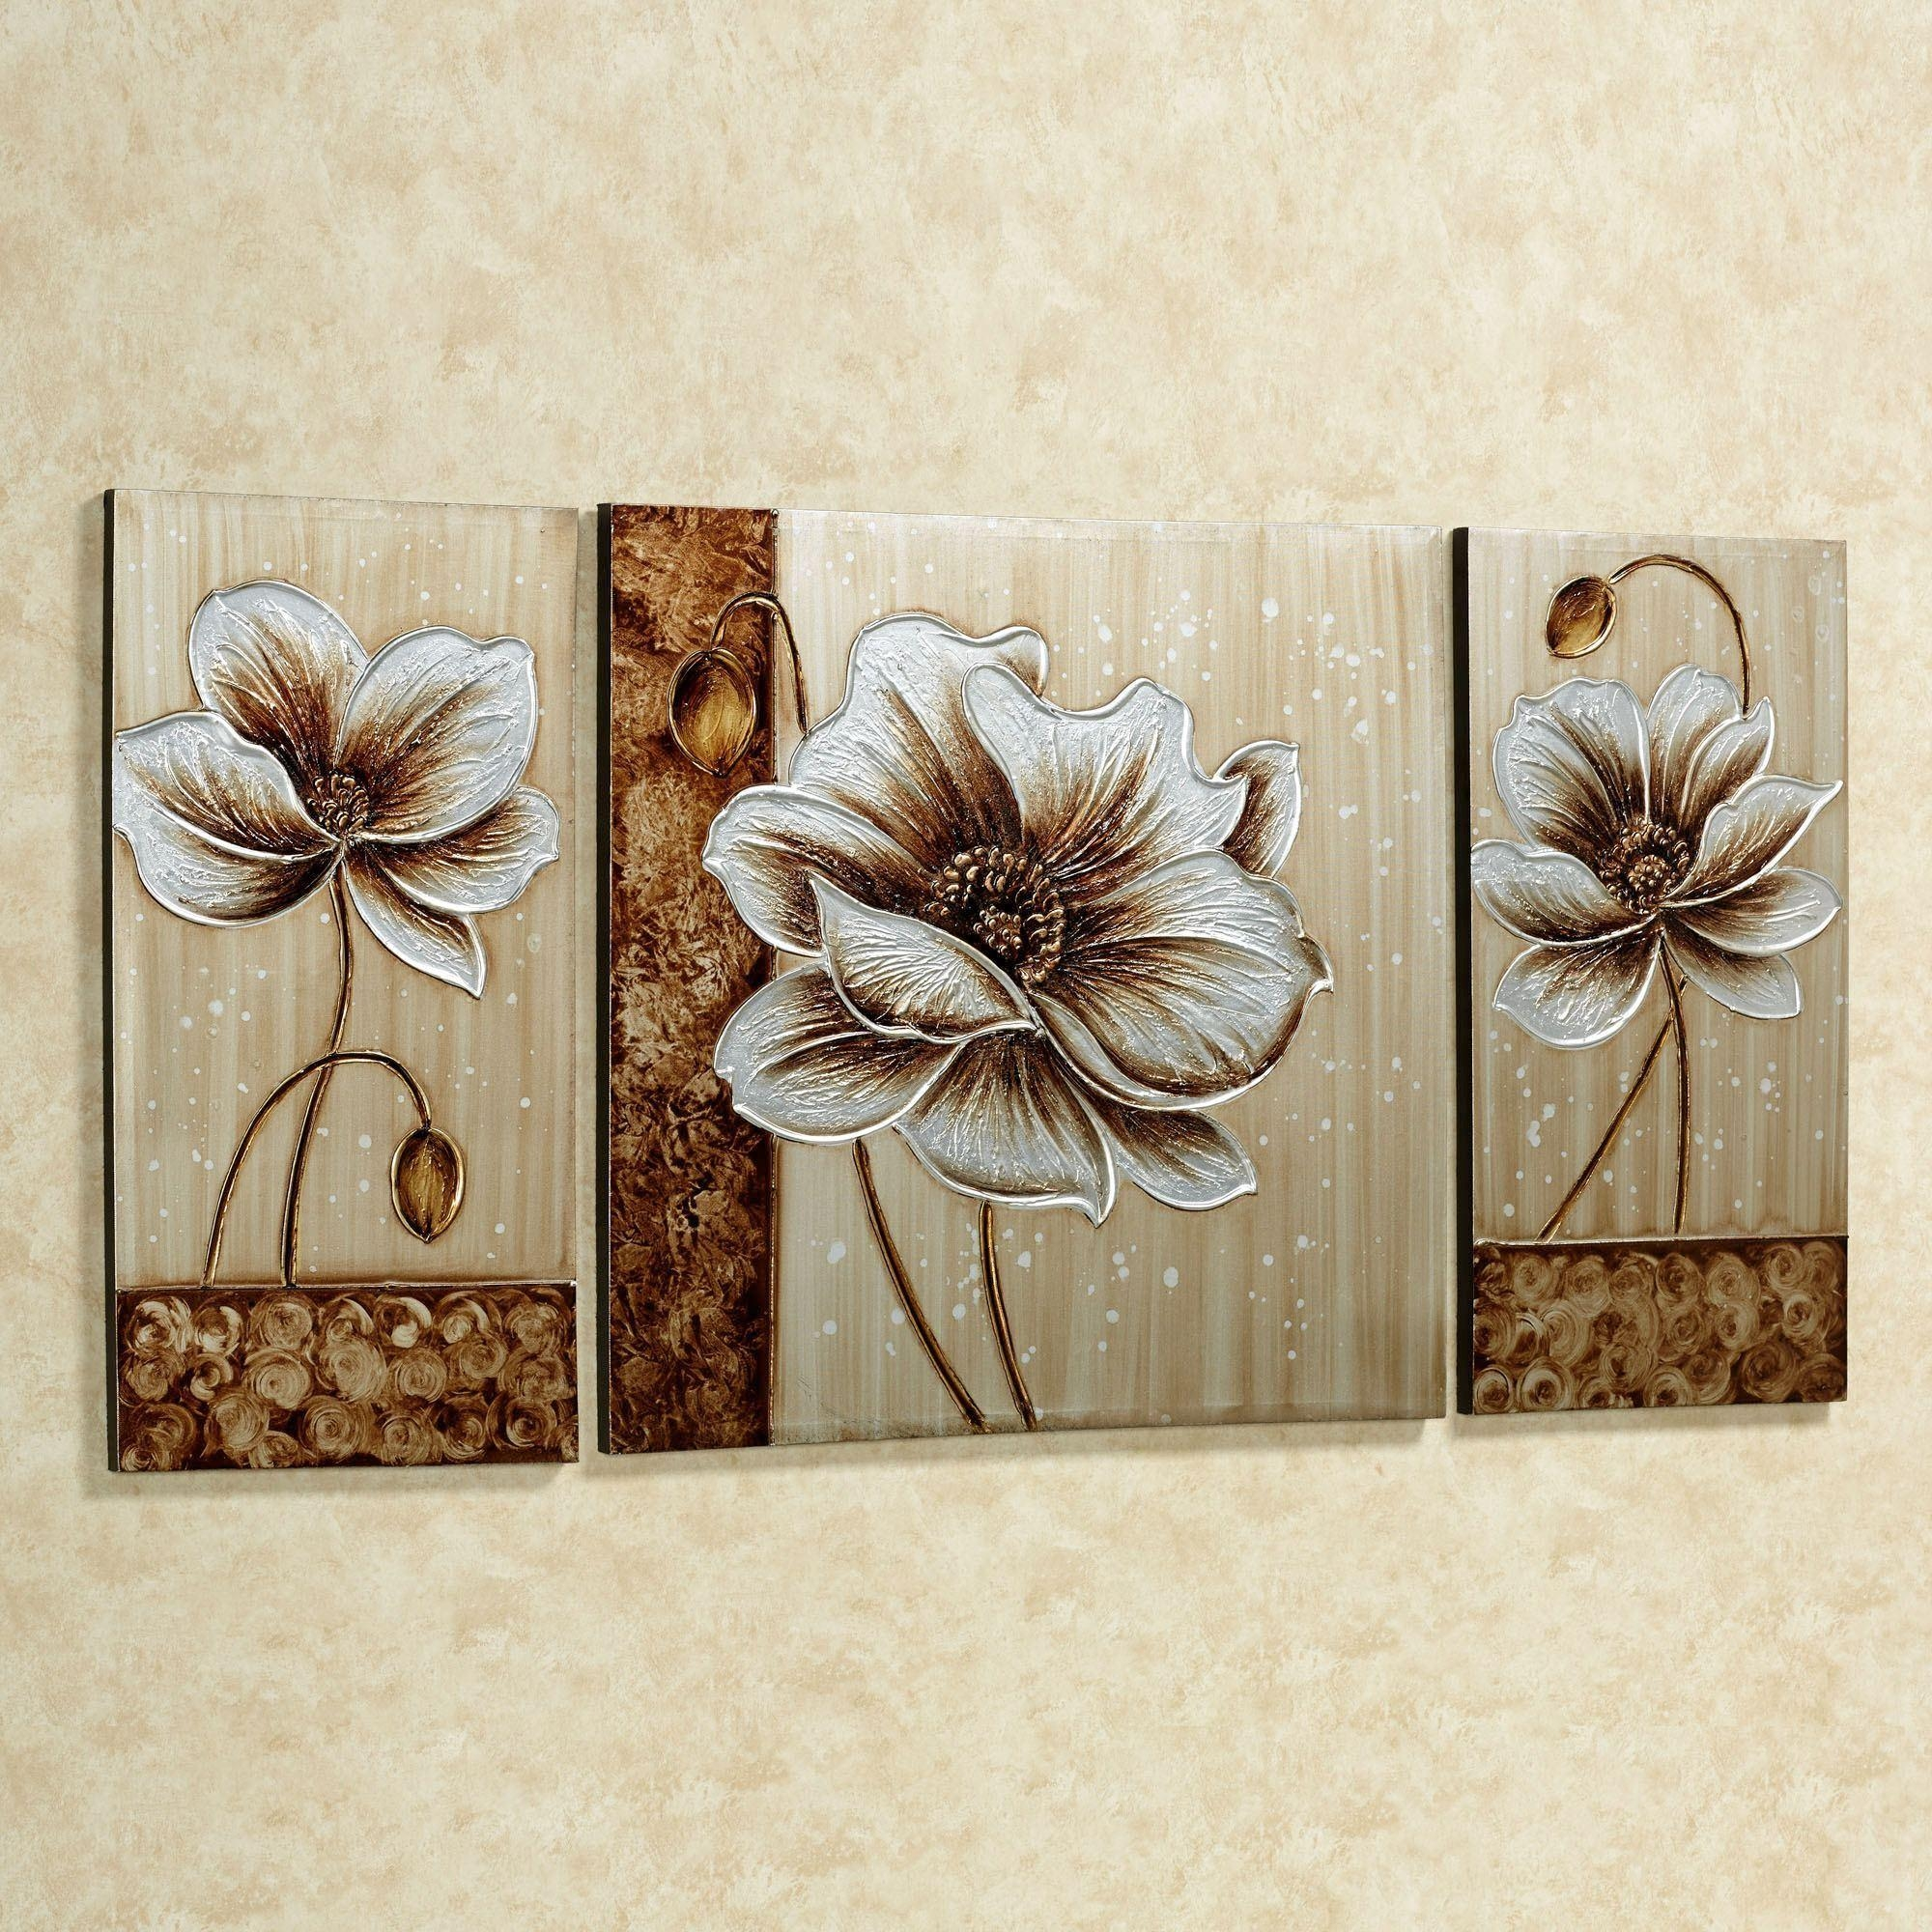 Floral Canvas Wall Art Lovely Wall Art Decor For Large Canvas Wall With Regard To Large Canvas Wall Art Sets (View 9 of 20)